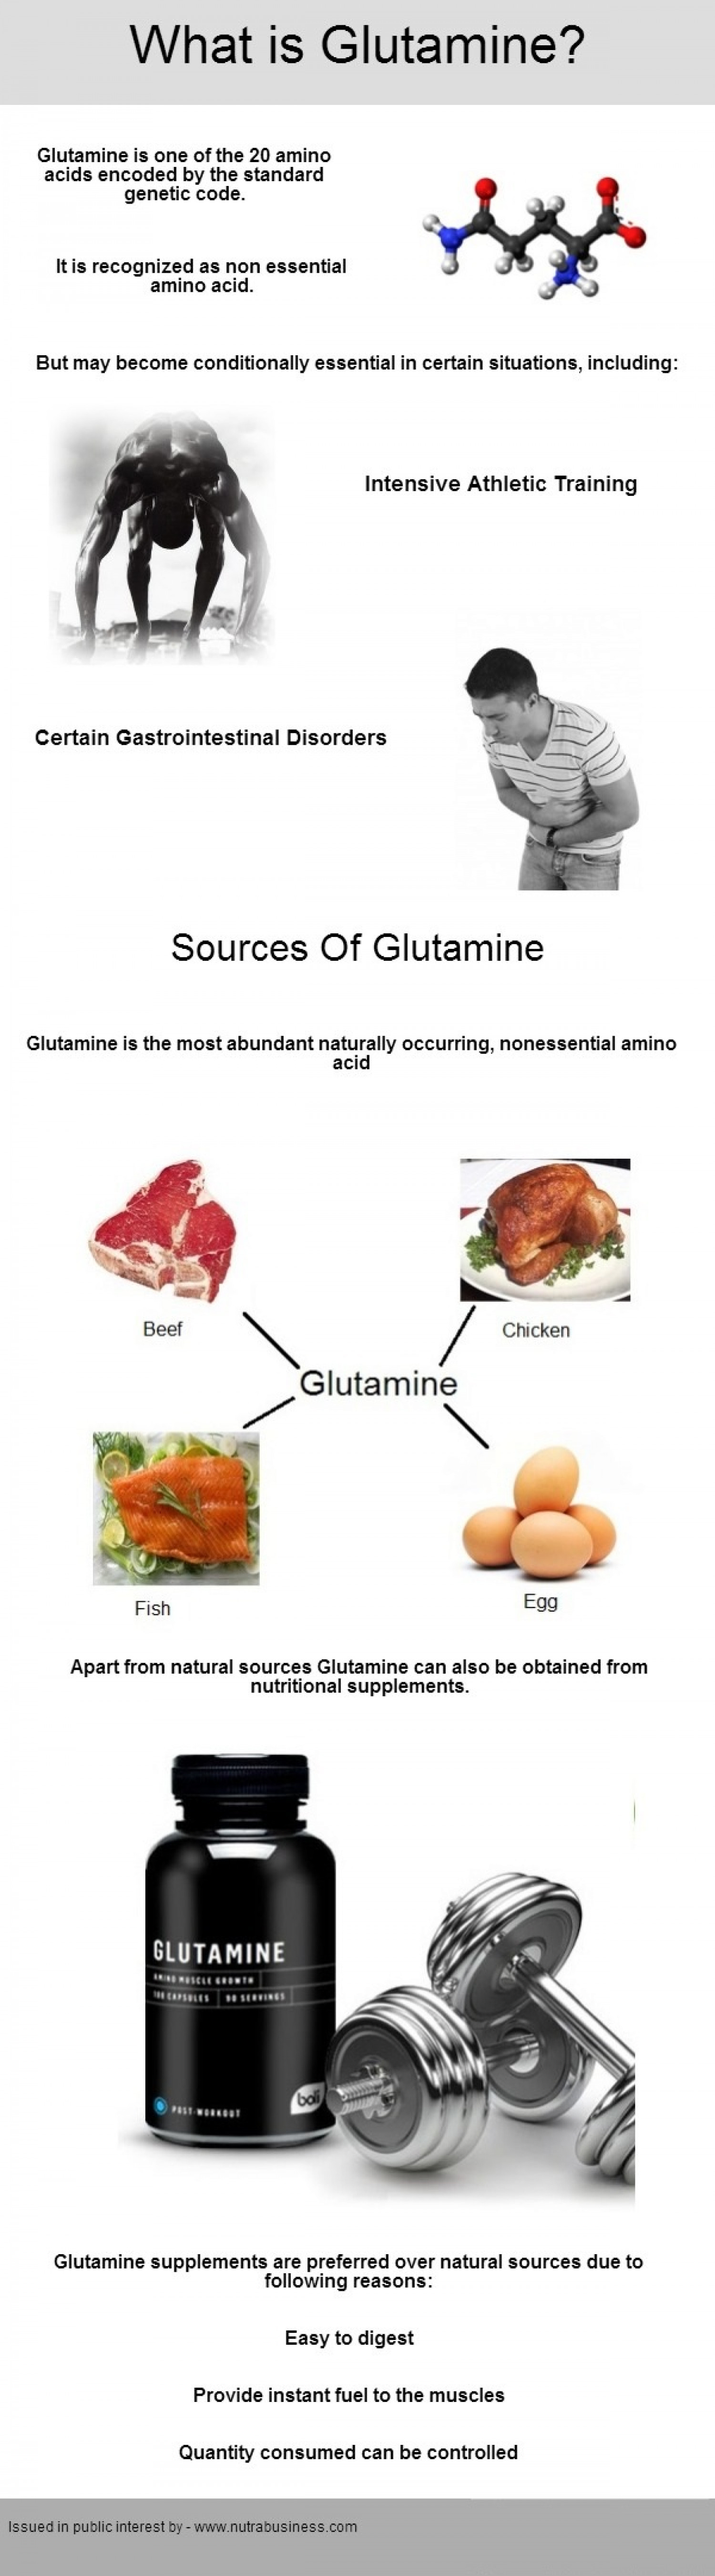 What is Glutamine Infographic